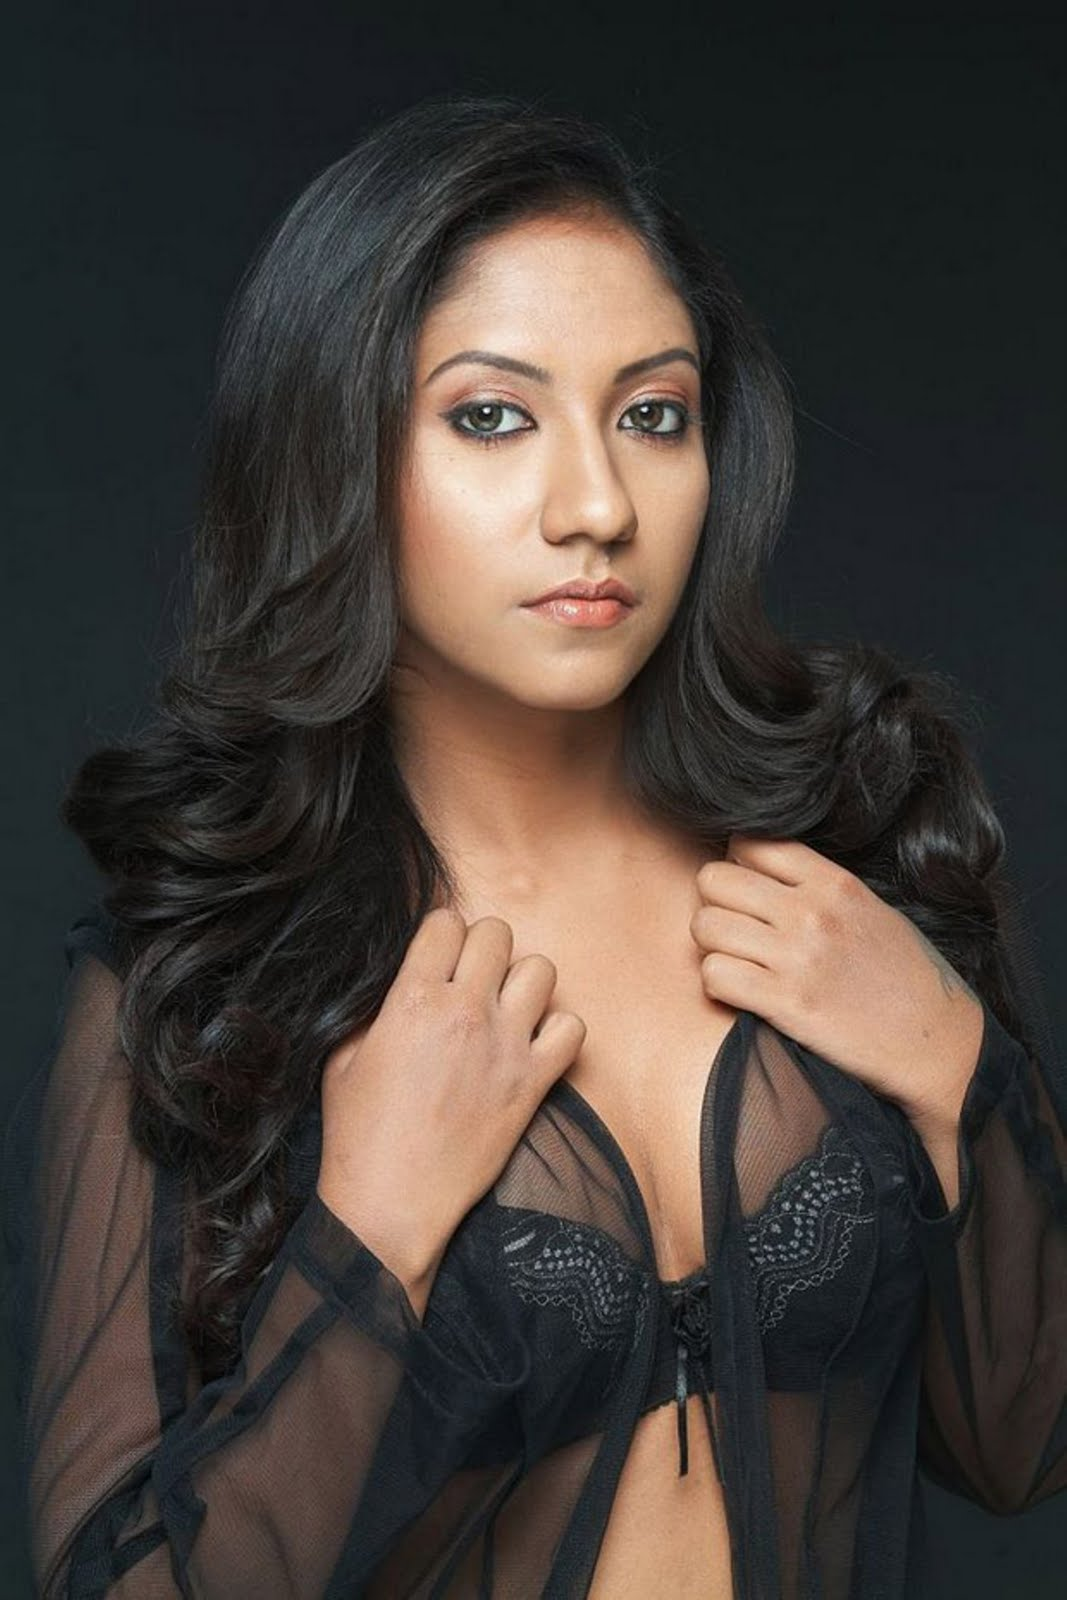 Above Deepa venkat hot fakes nice message